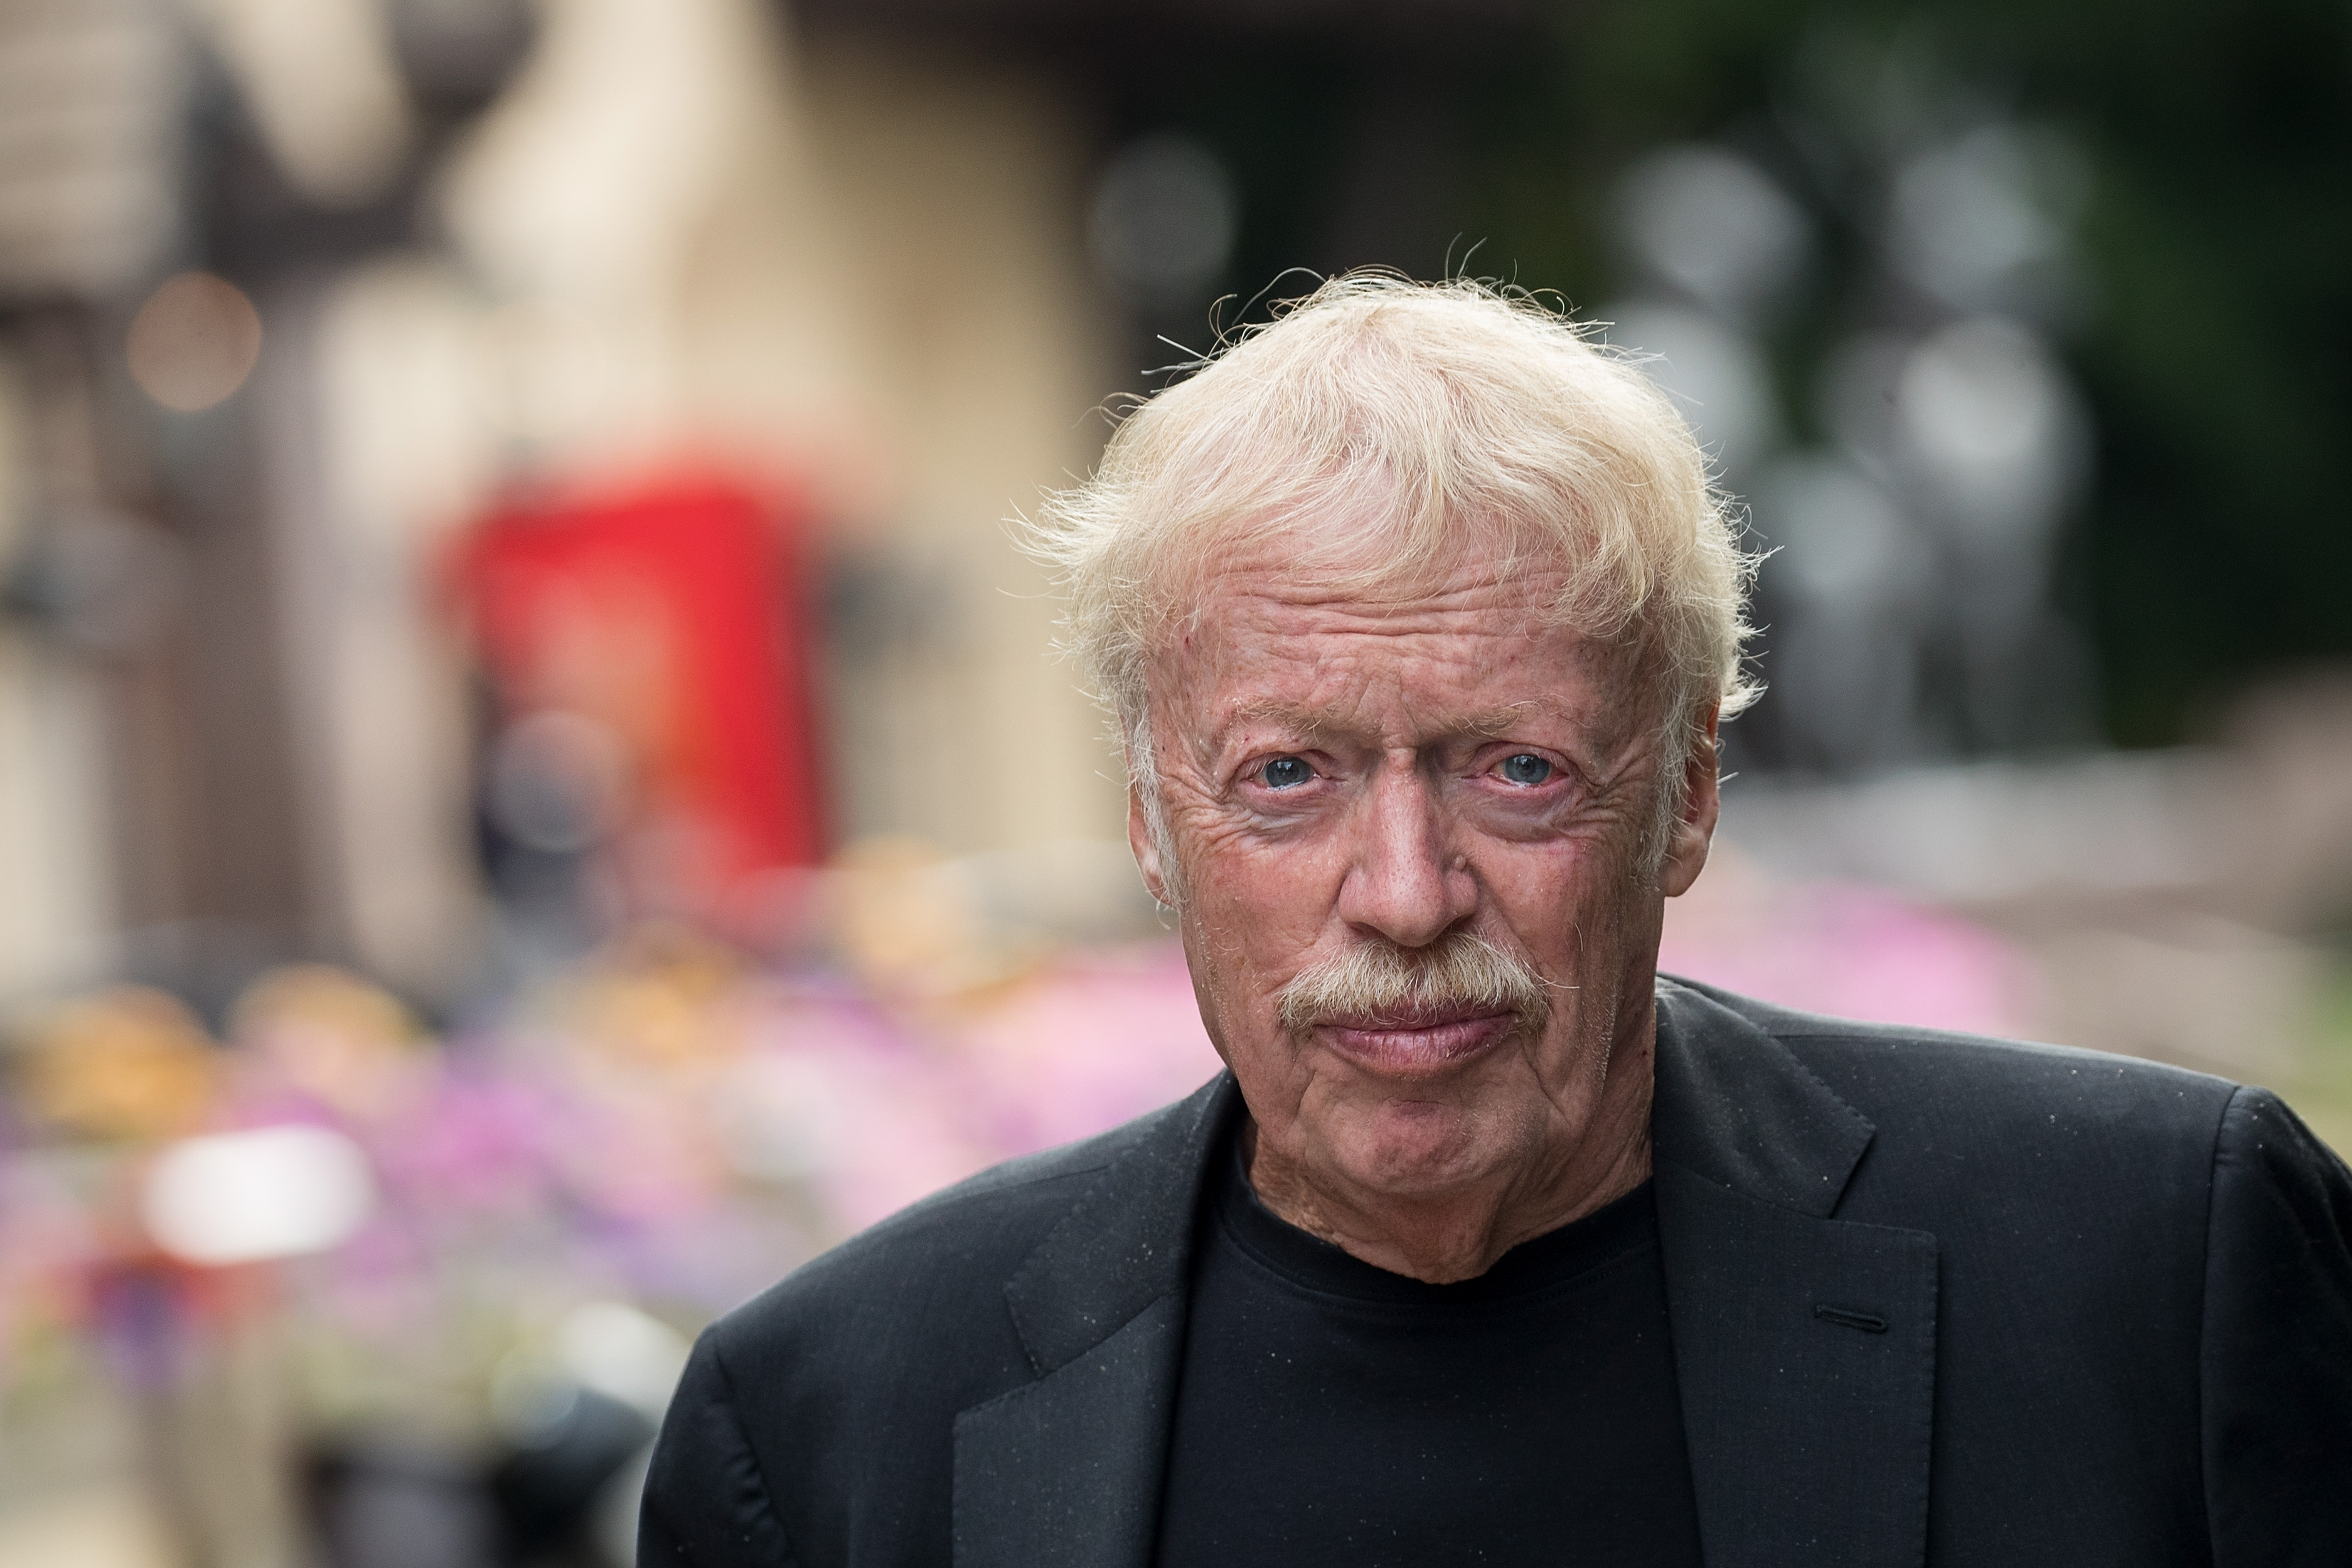 Phil Knight, co-founder and chairman emeritus of Nike, attends the fourth day of the annual Allen & Company Sun Valley Conference, July 14, 2017, in Sun Valley, Idaho (Getty Images)